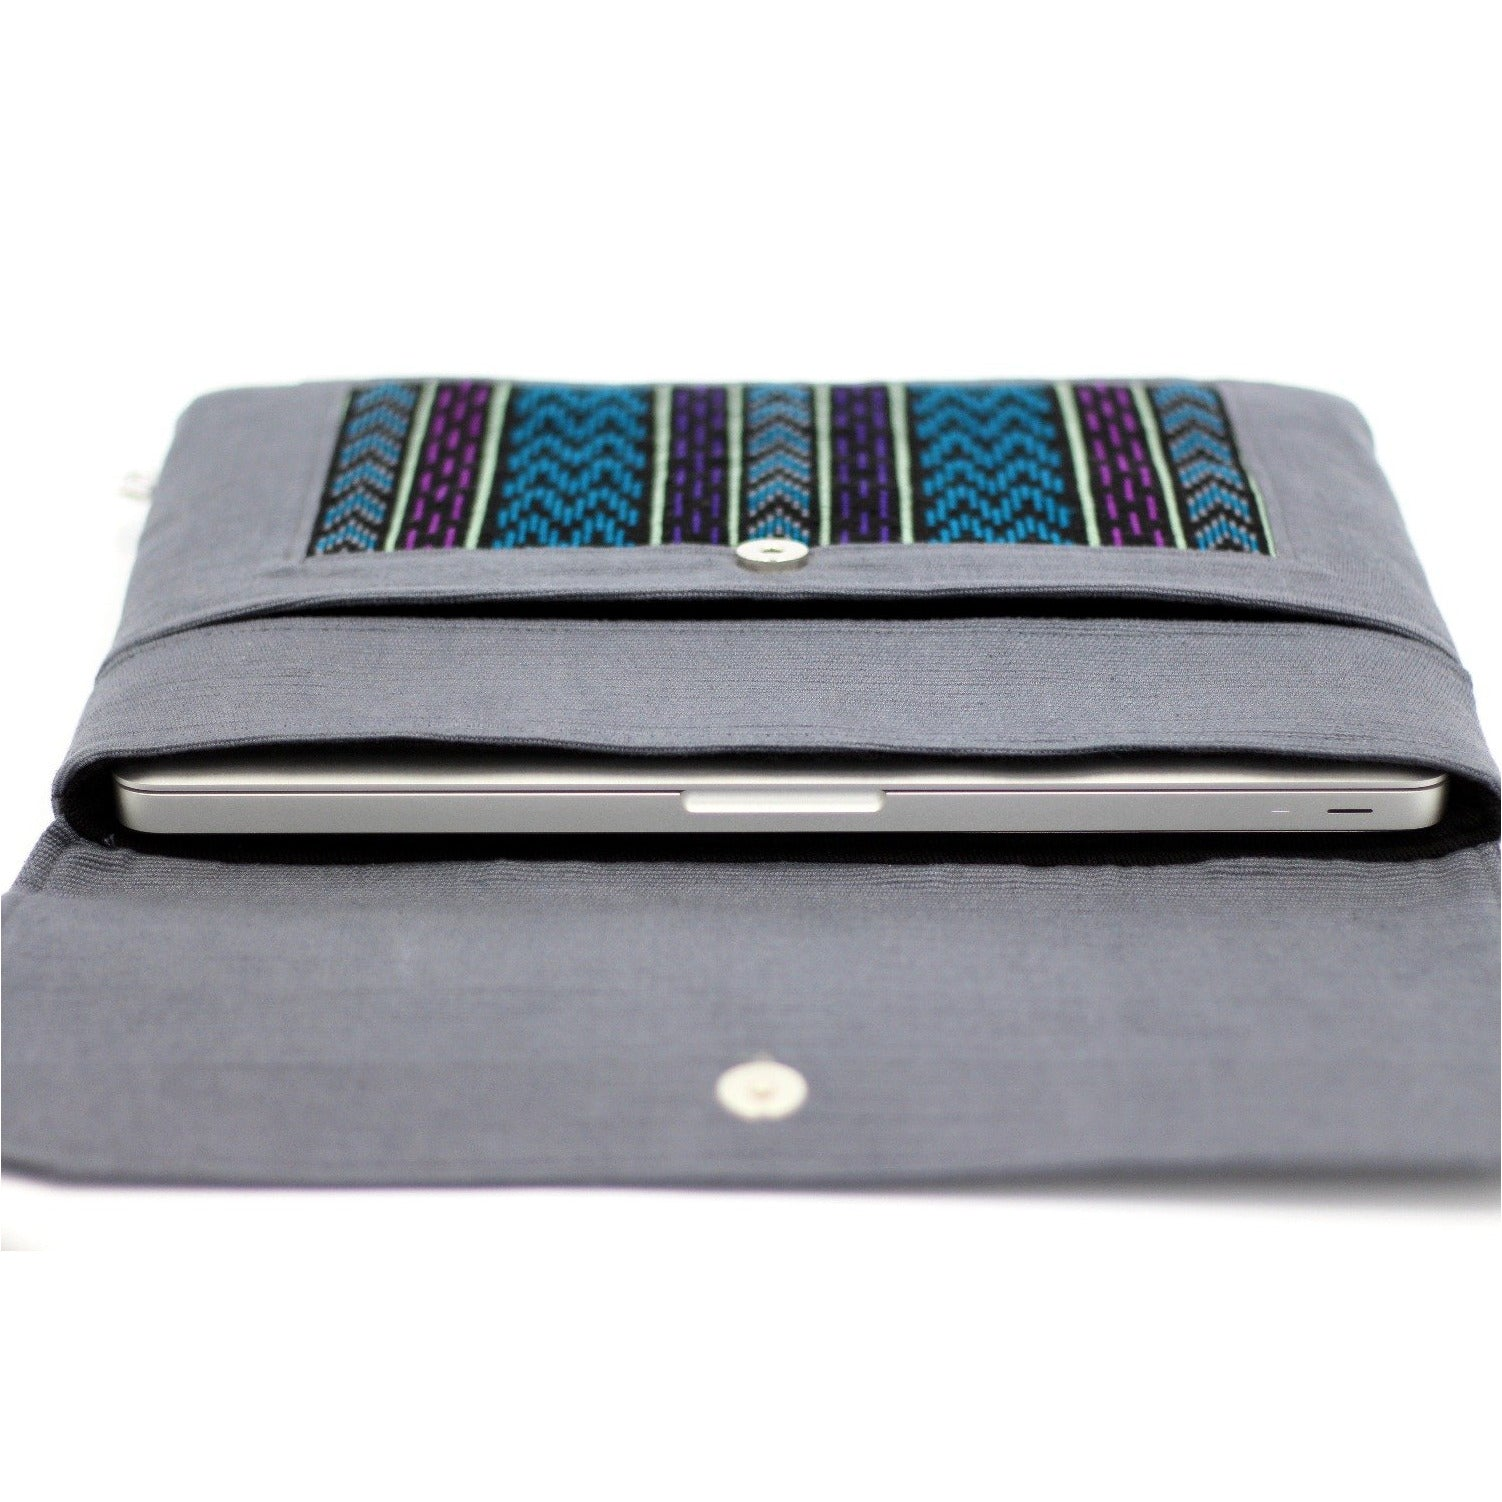 uq k'iche laptop case w laptop